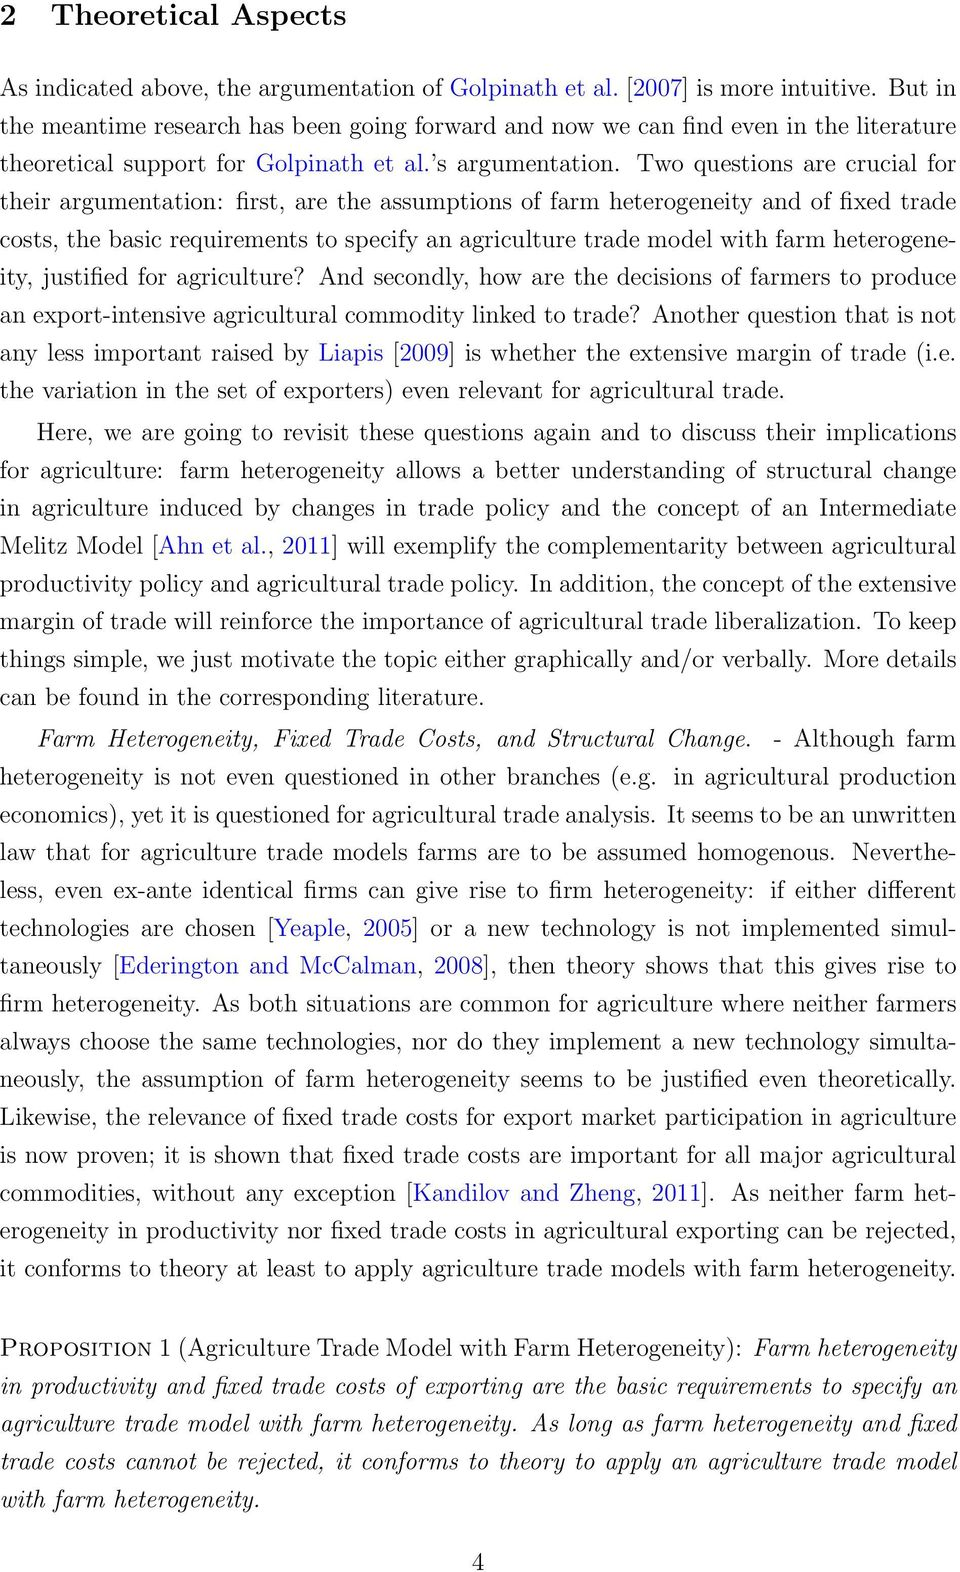 Two questions are crucial for their argumentation: first, are the assumptions of farm heterogeneity and of fixed trade costs, the basic requirements to specify an agriculture trade model with farm